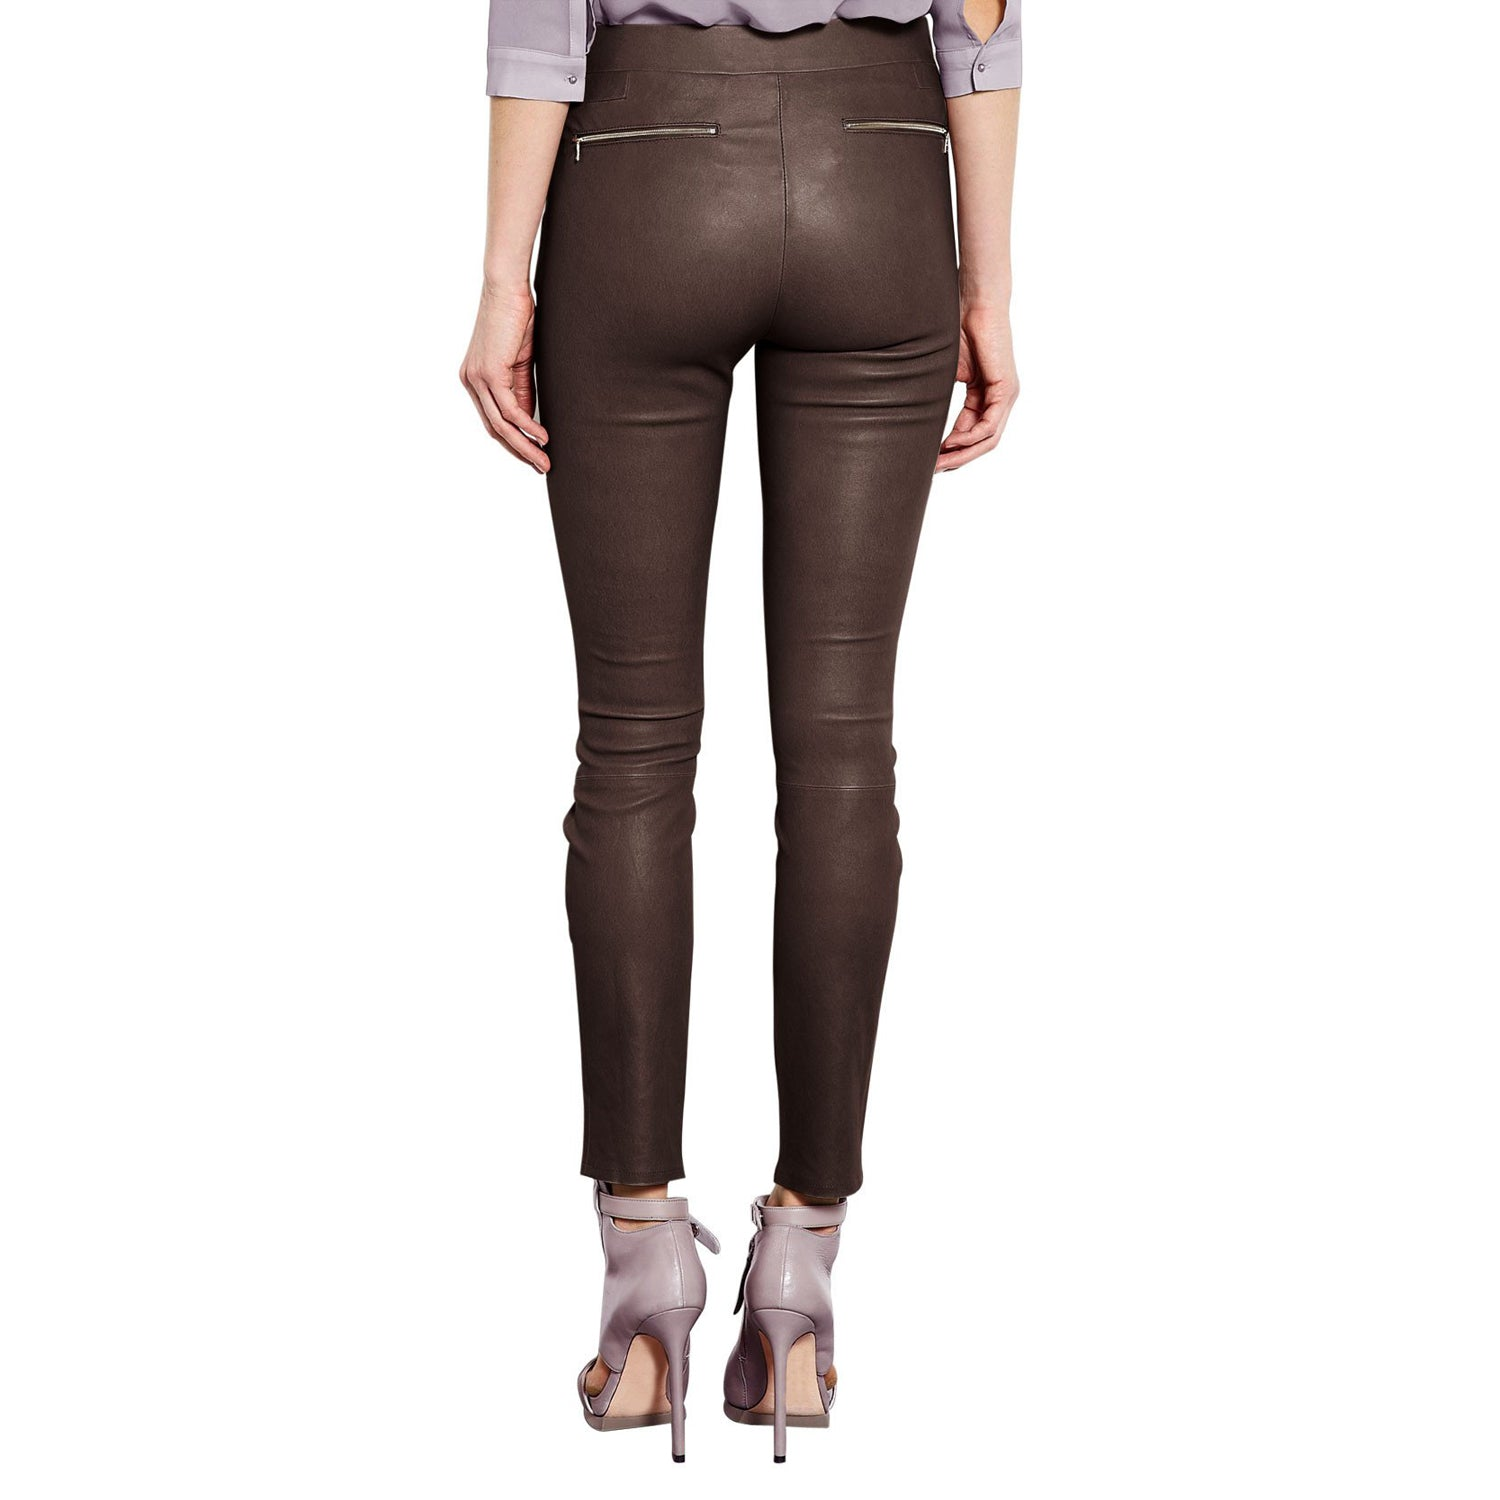 Brown leather pants (style #7) - Lusso Leather - 2